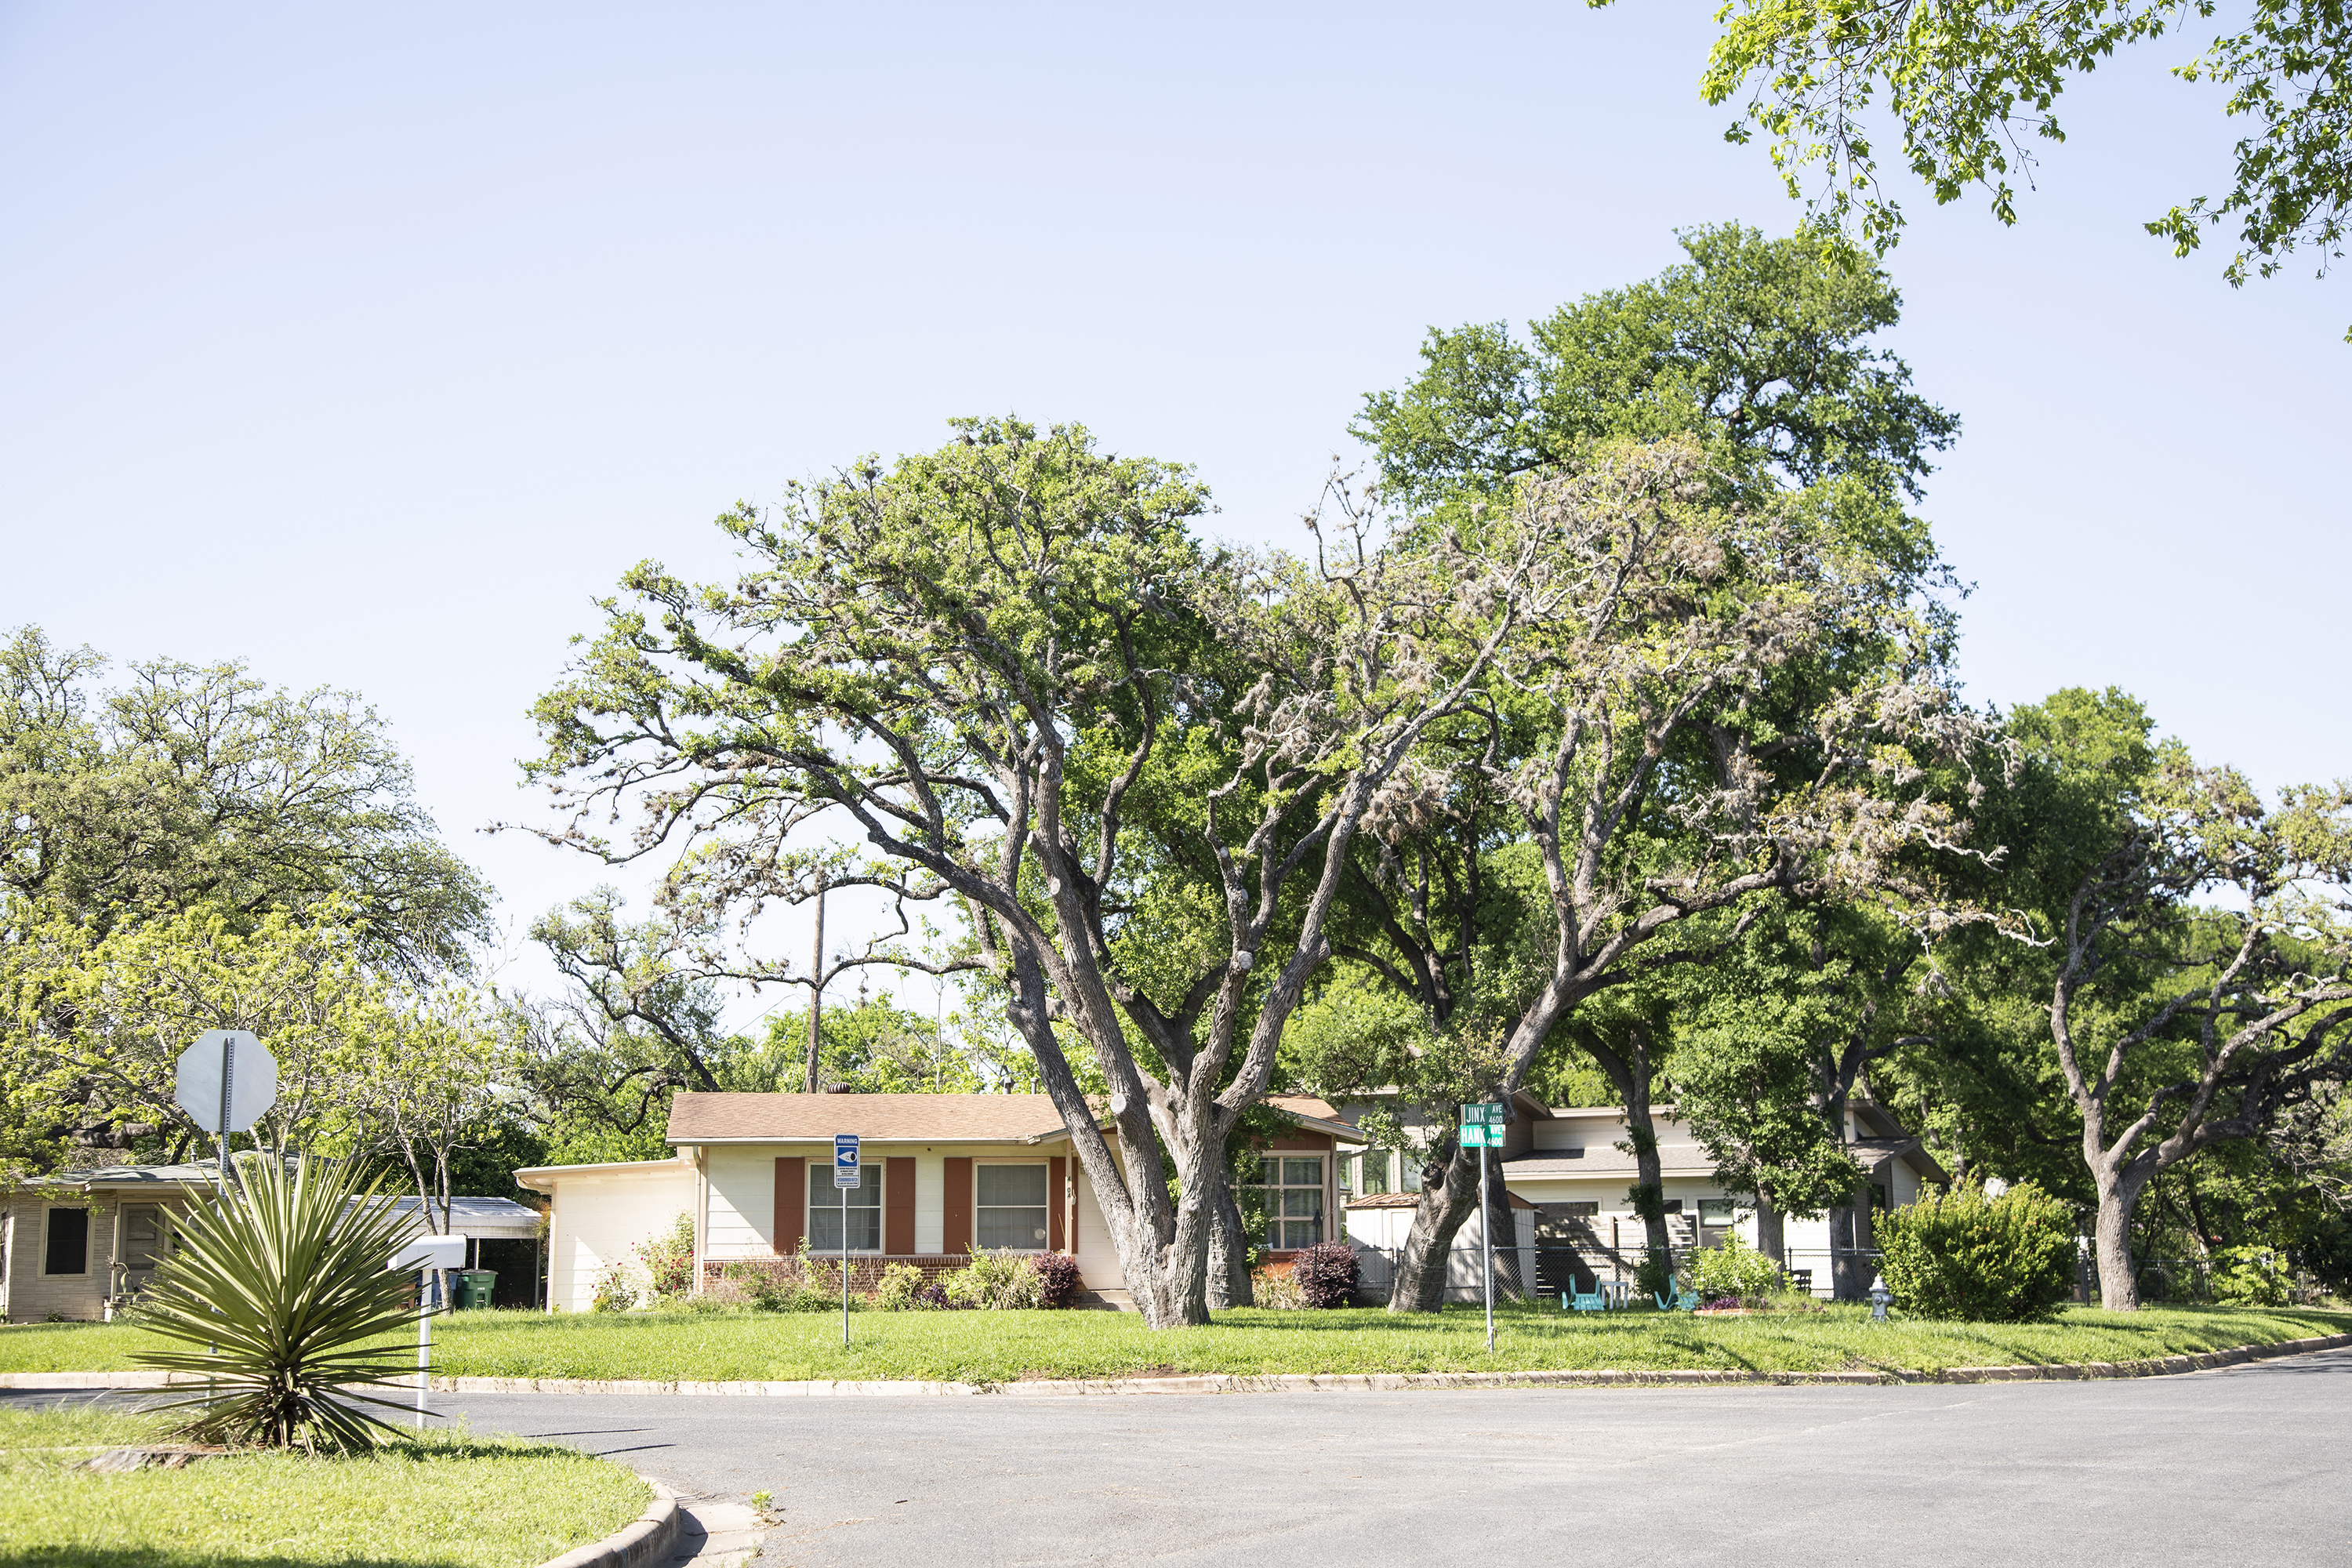 A ranch style home in an Austin neighborhood, with a very large green tree in the front yard and lush vegetation around.